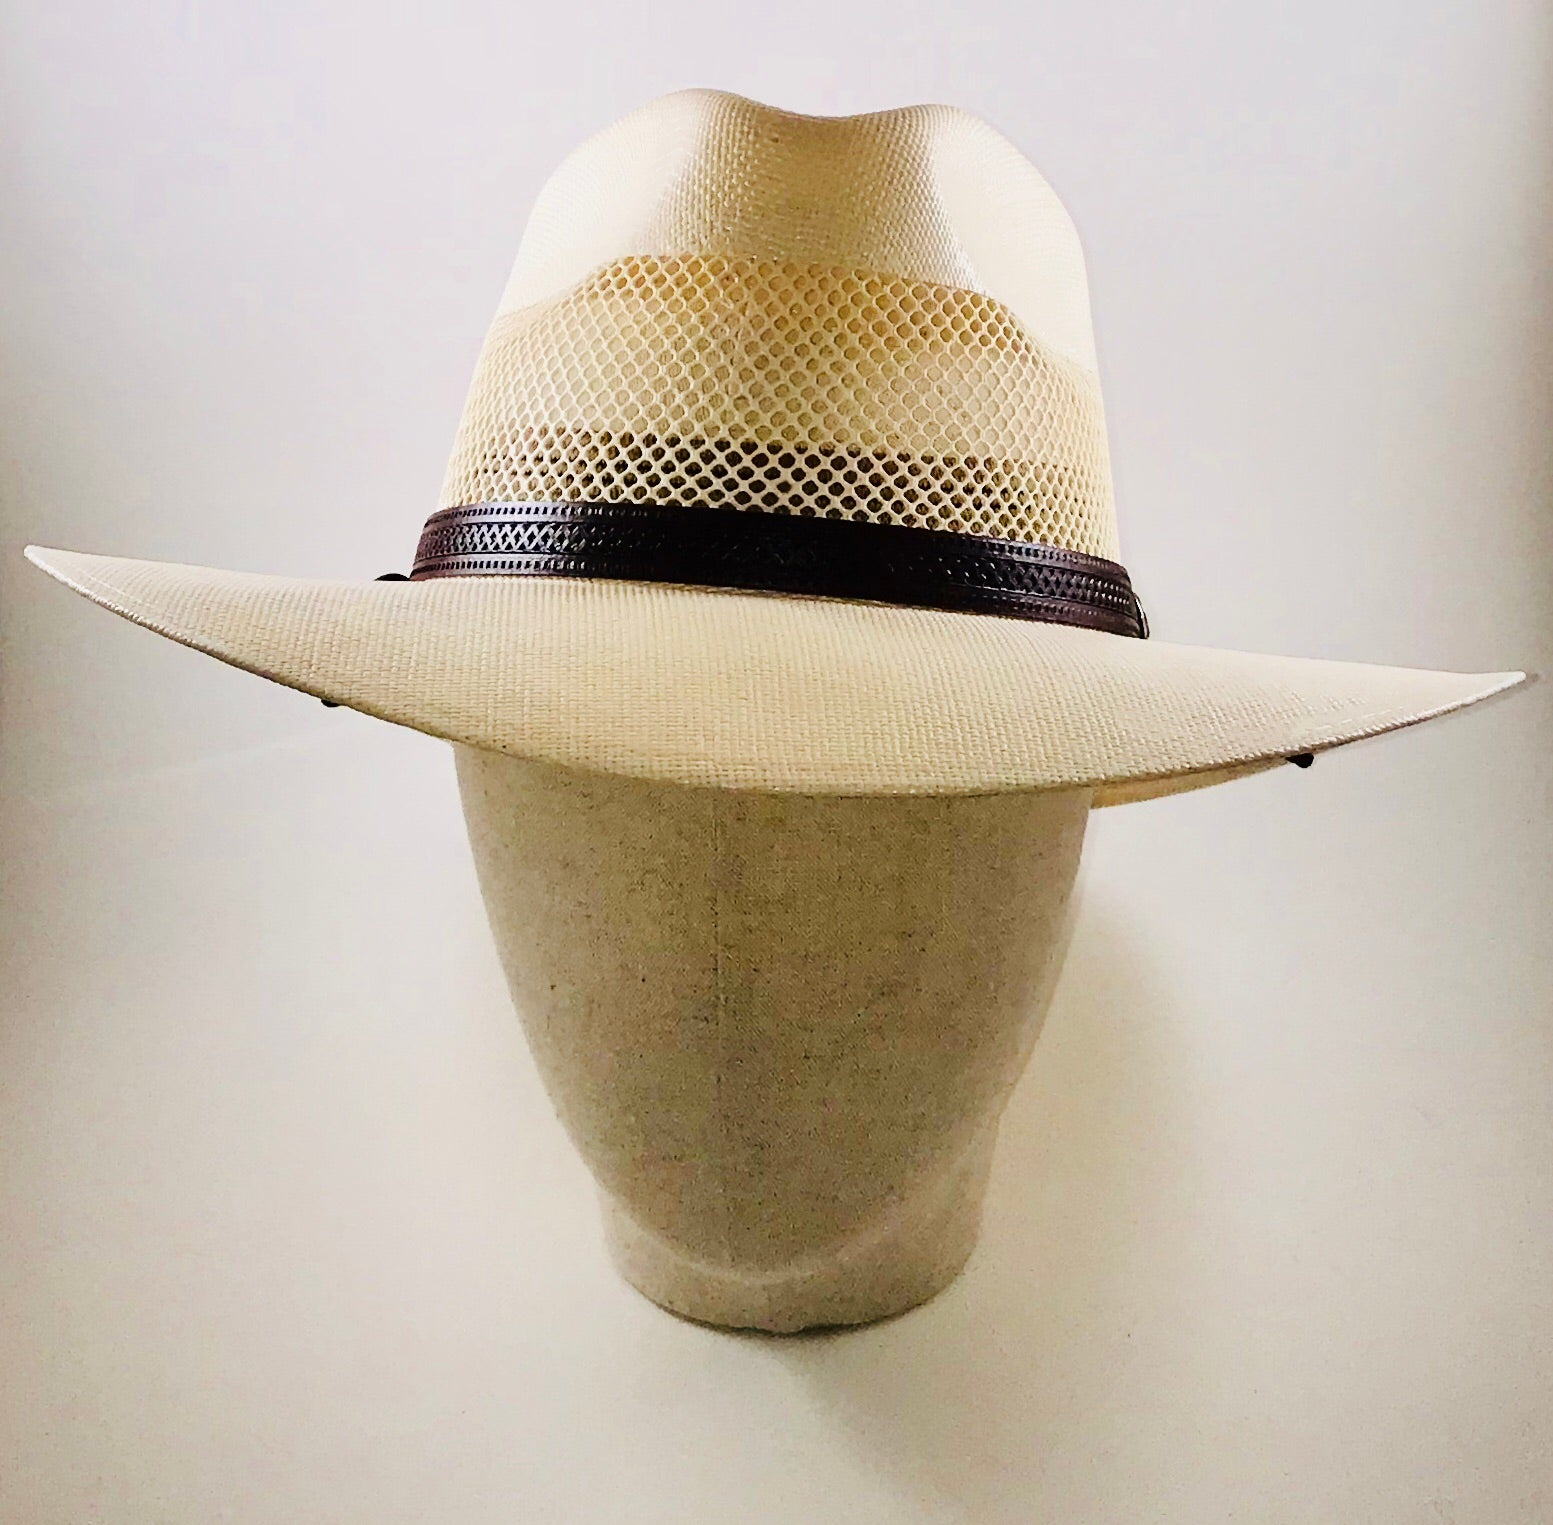 Florence by Freedom Hat Makers (Barcelona)